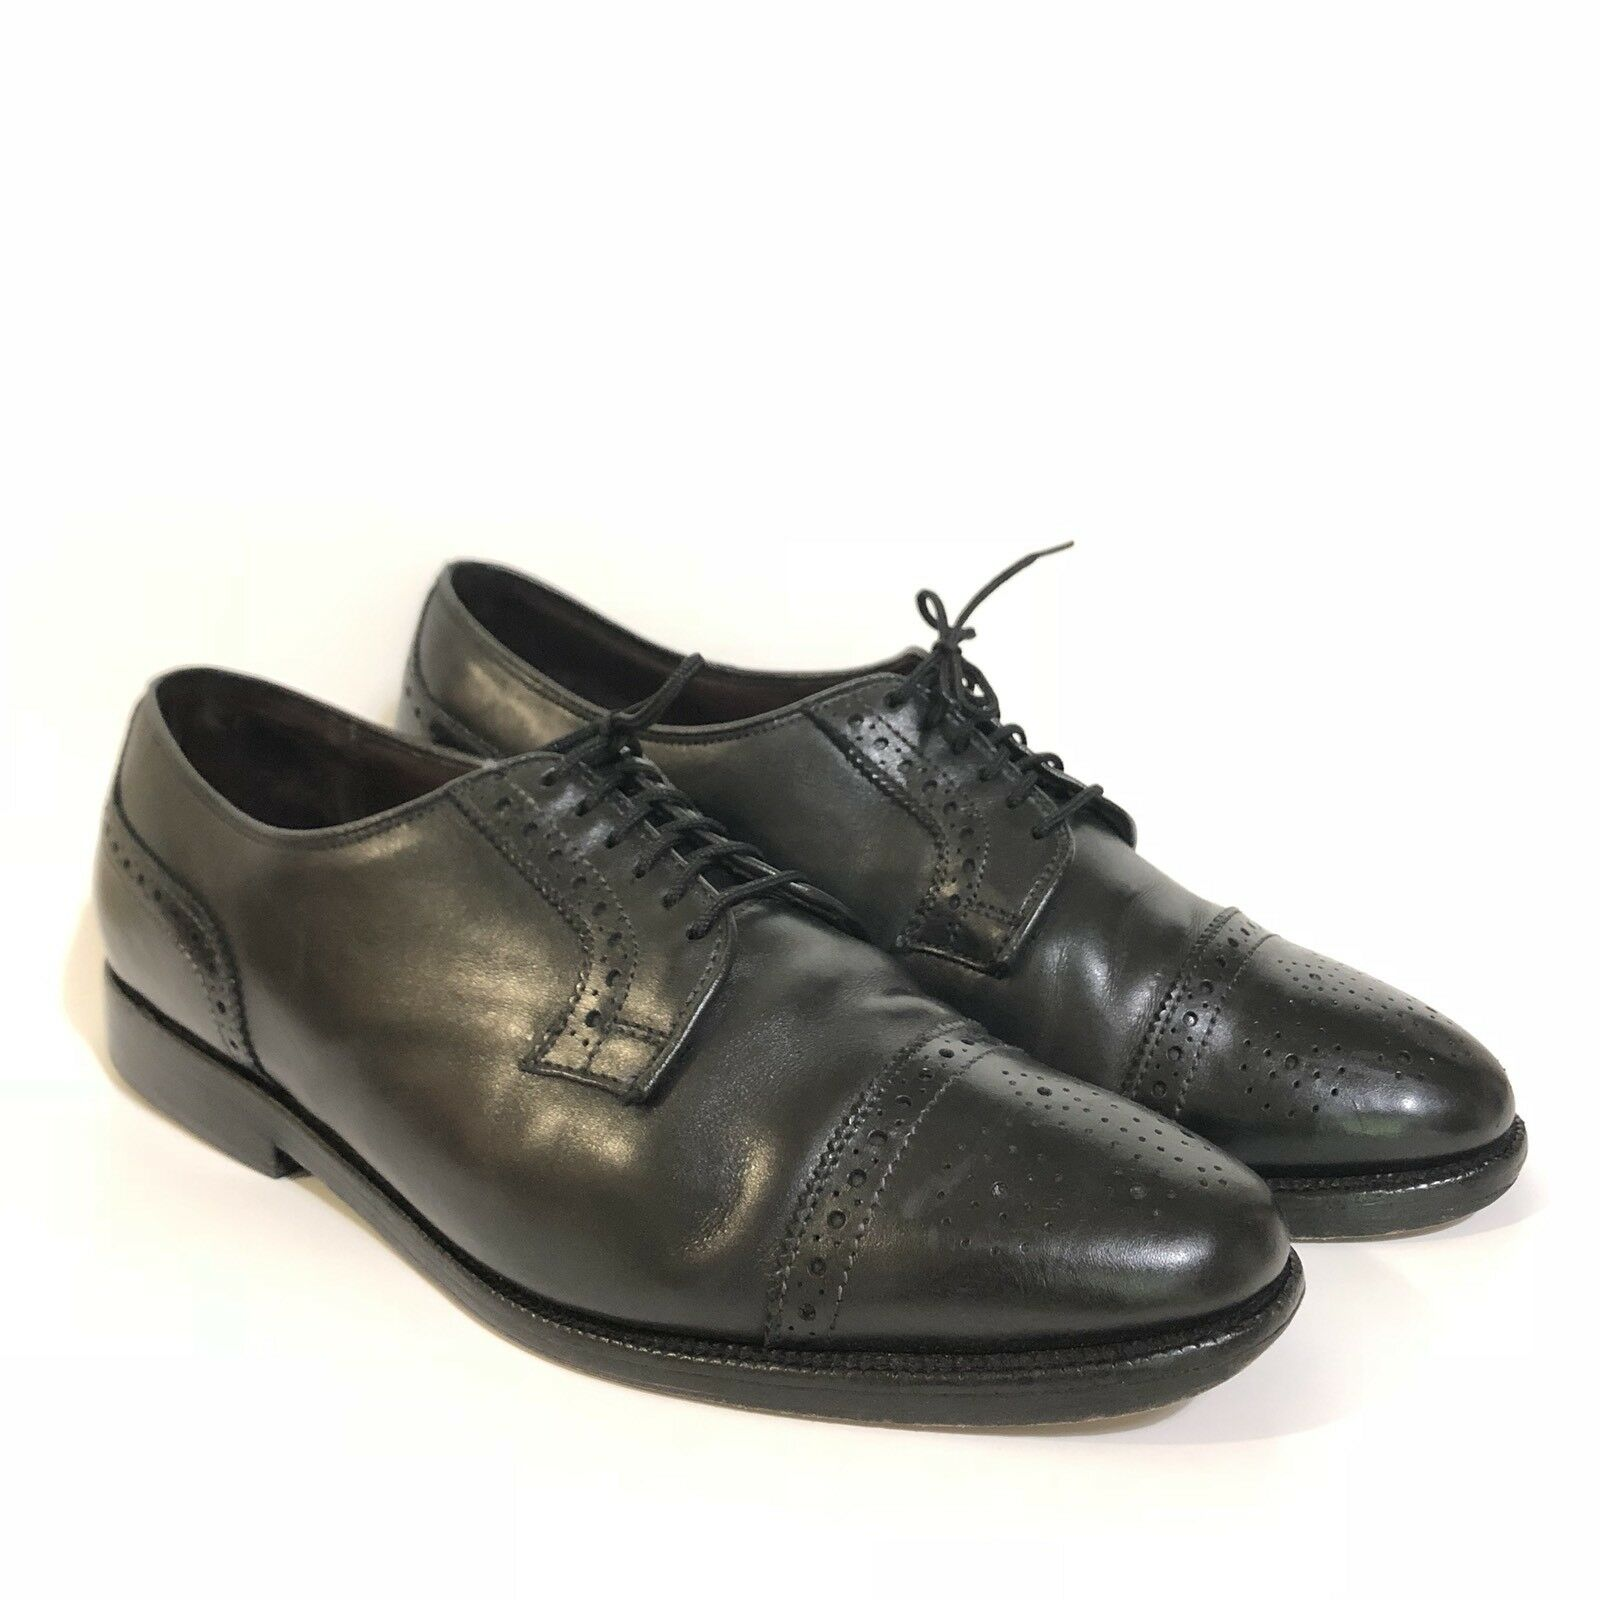 Allen Edmonds The Hancock Leather Oxfords 9.5 D Black Independence Line Toe Cap